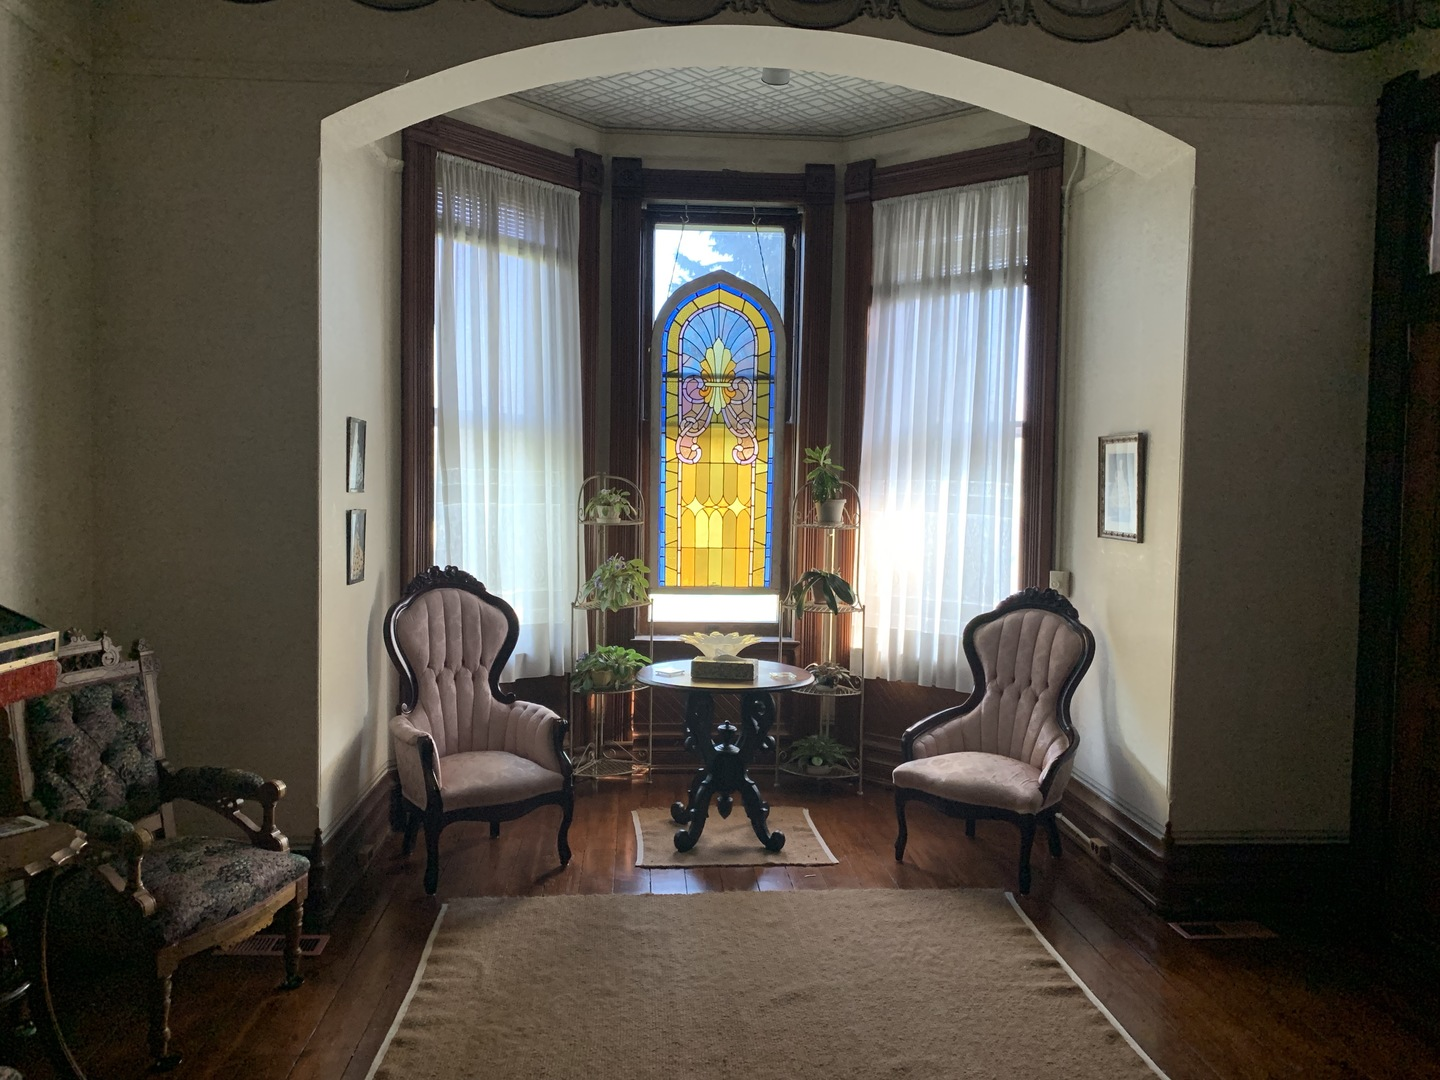 A living room filled with furniture and a large window at The Grand Kerr House.